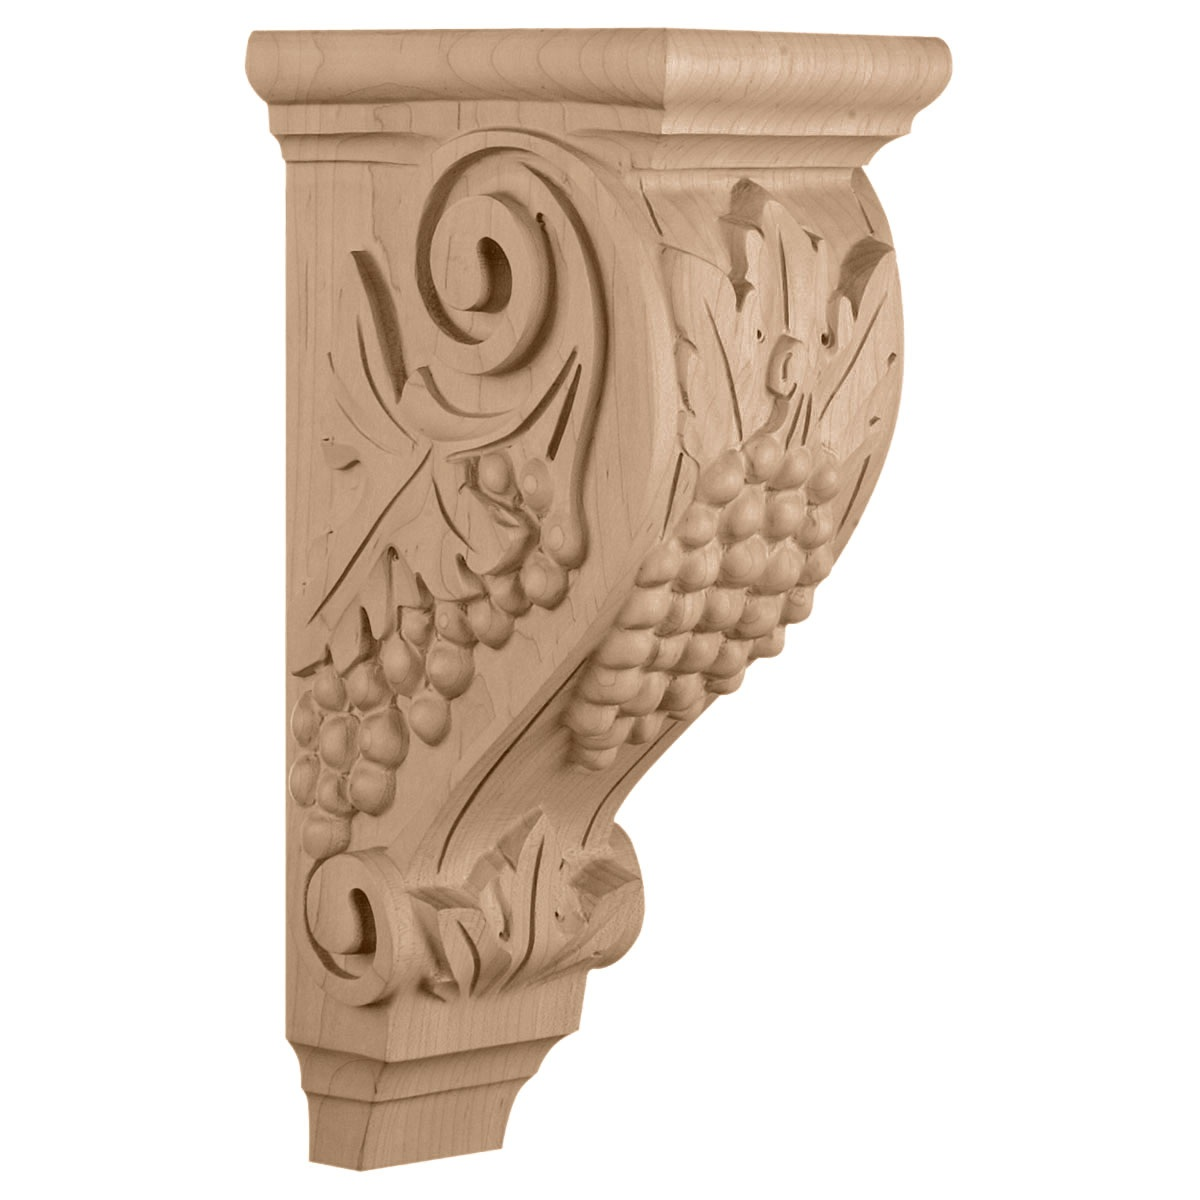 "CORGR4 Large Grape Corbel 5""W x 7 1/2""D x 14""H"